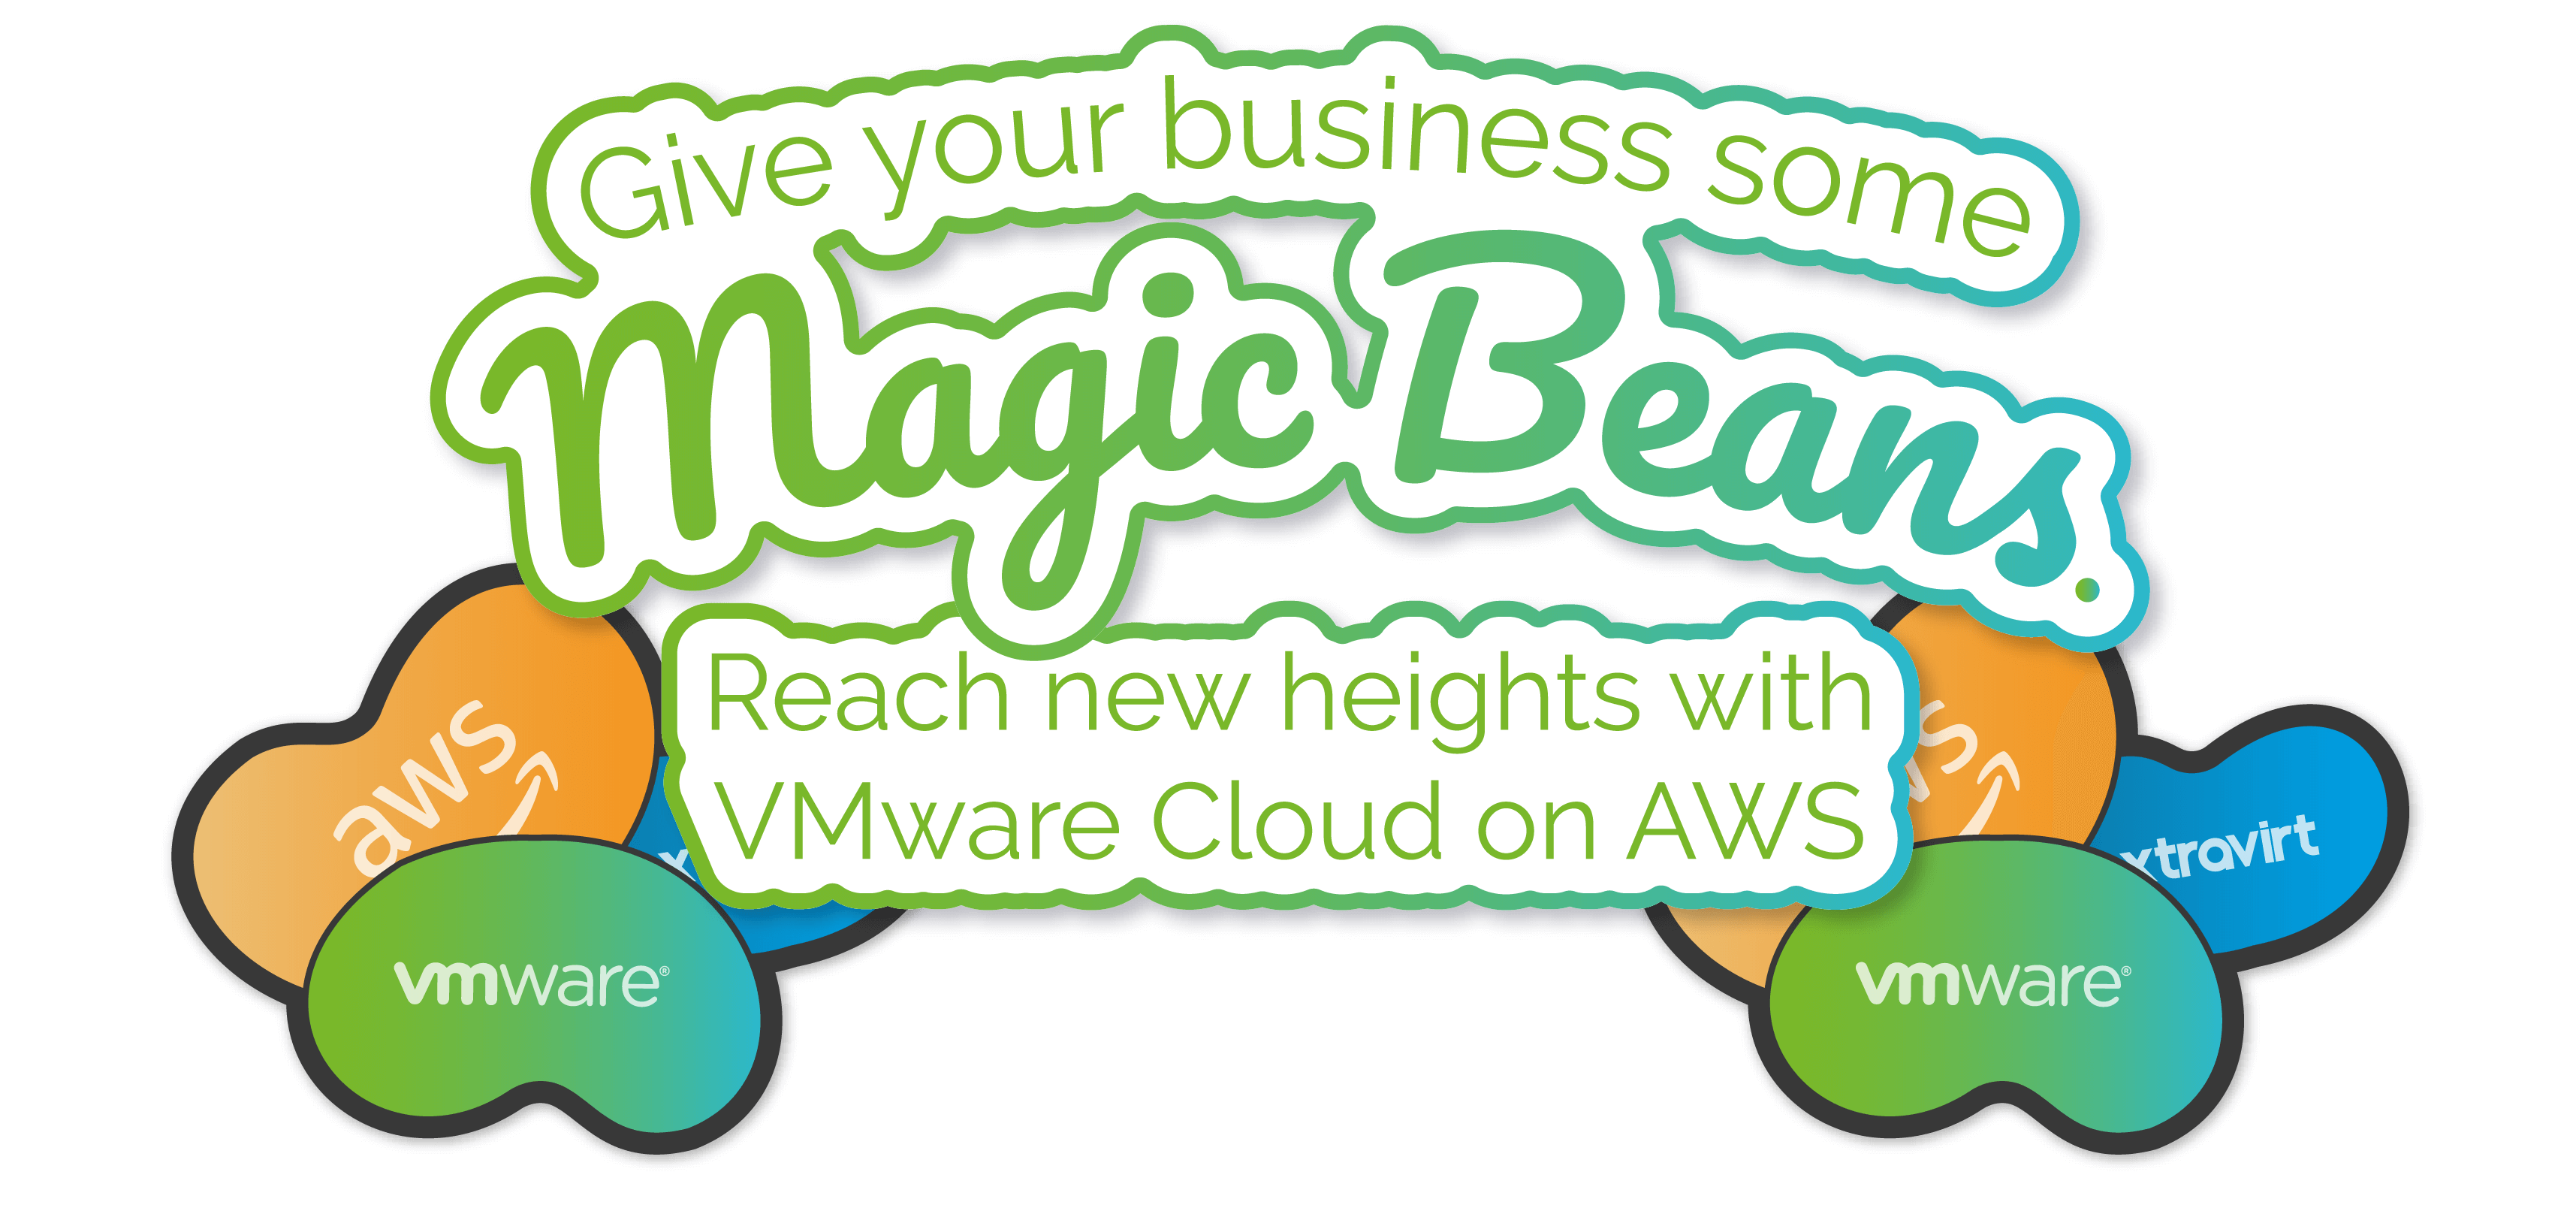 Give your business some magic beans. Reach new heights with VMware Cloud on AWS